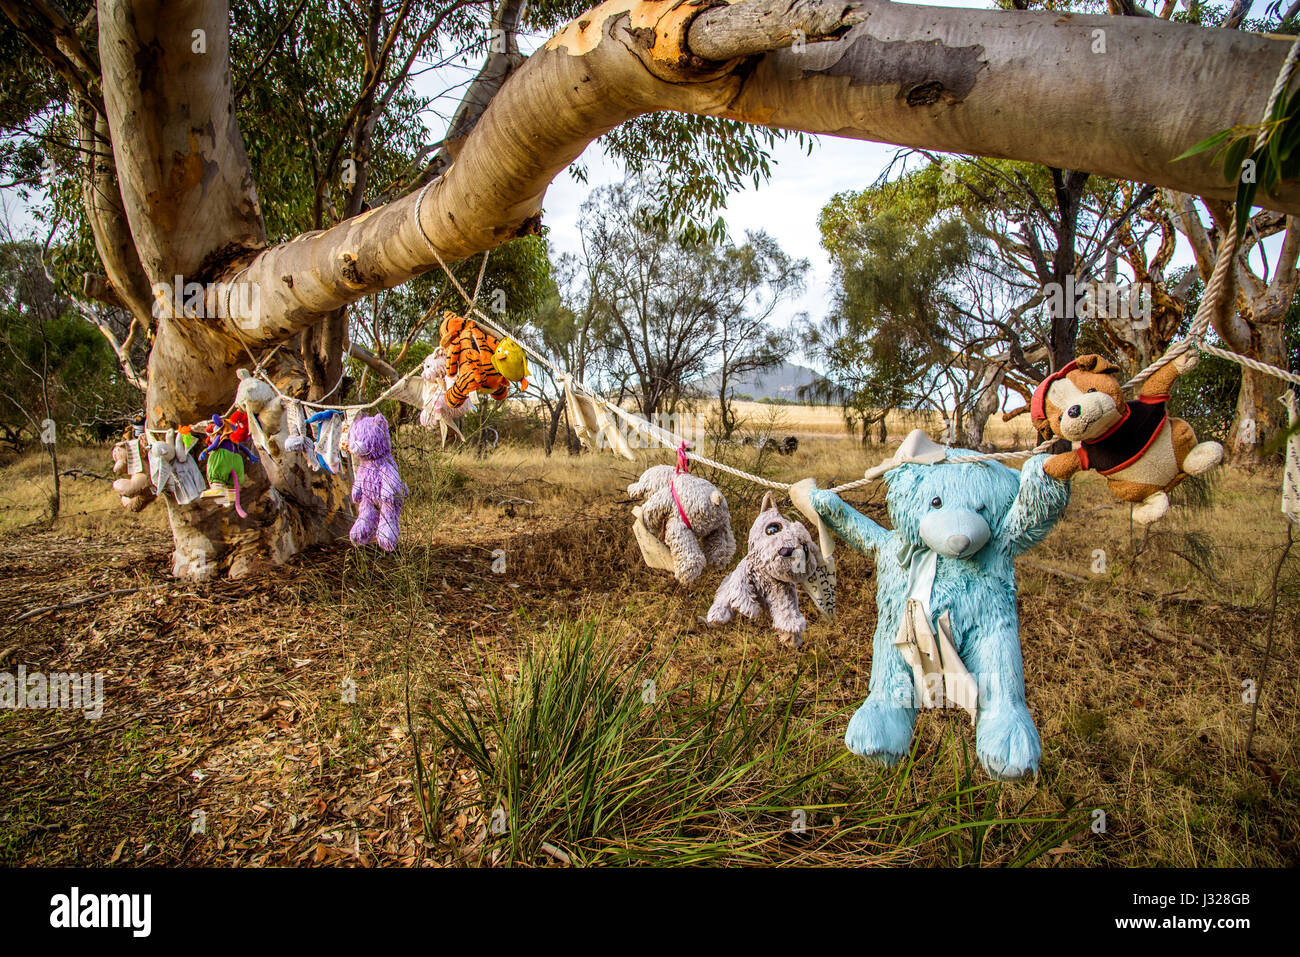 Forgotten teddy bears monument at Eyre Peninsula, South Australia. - Stock Image